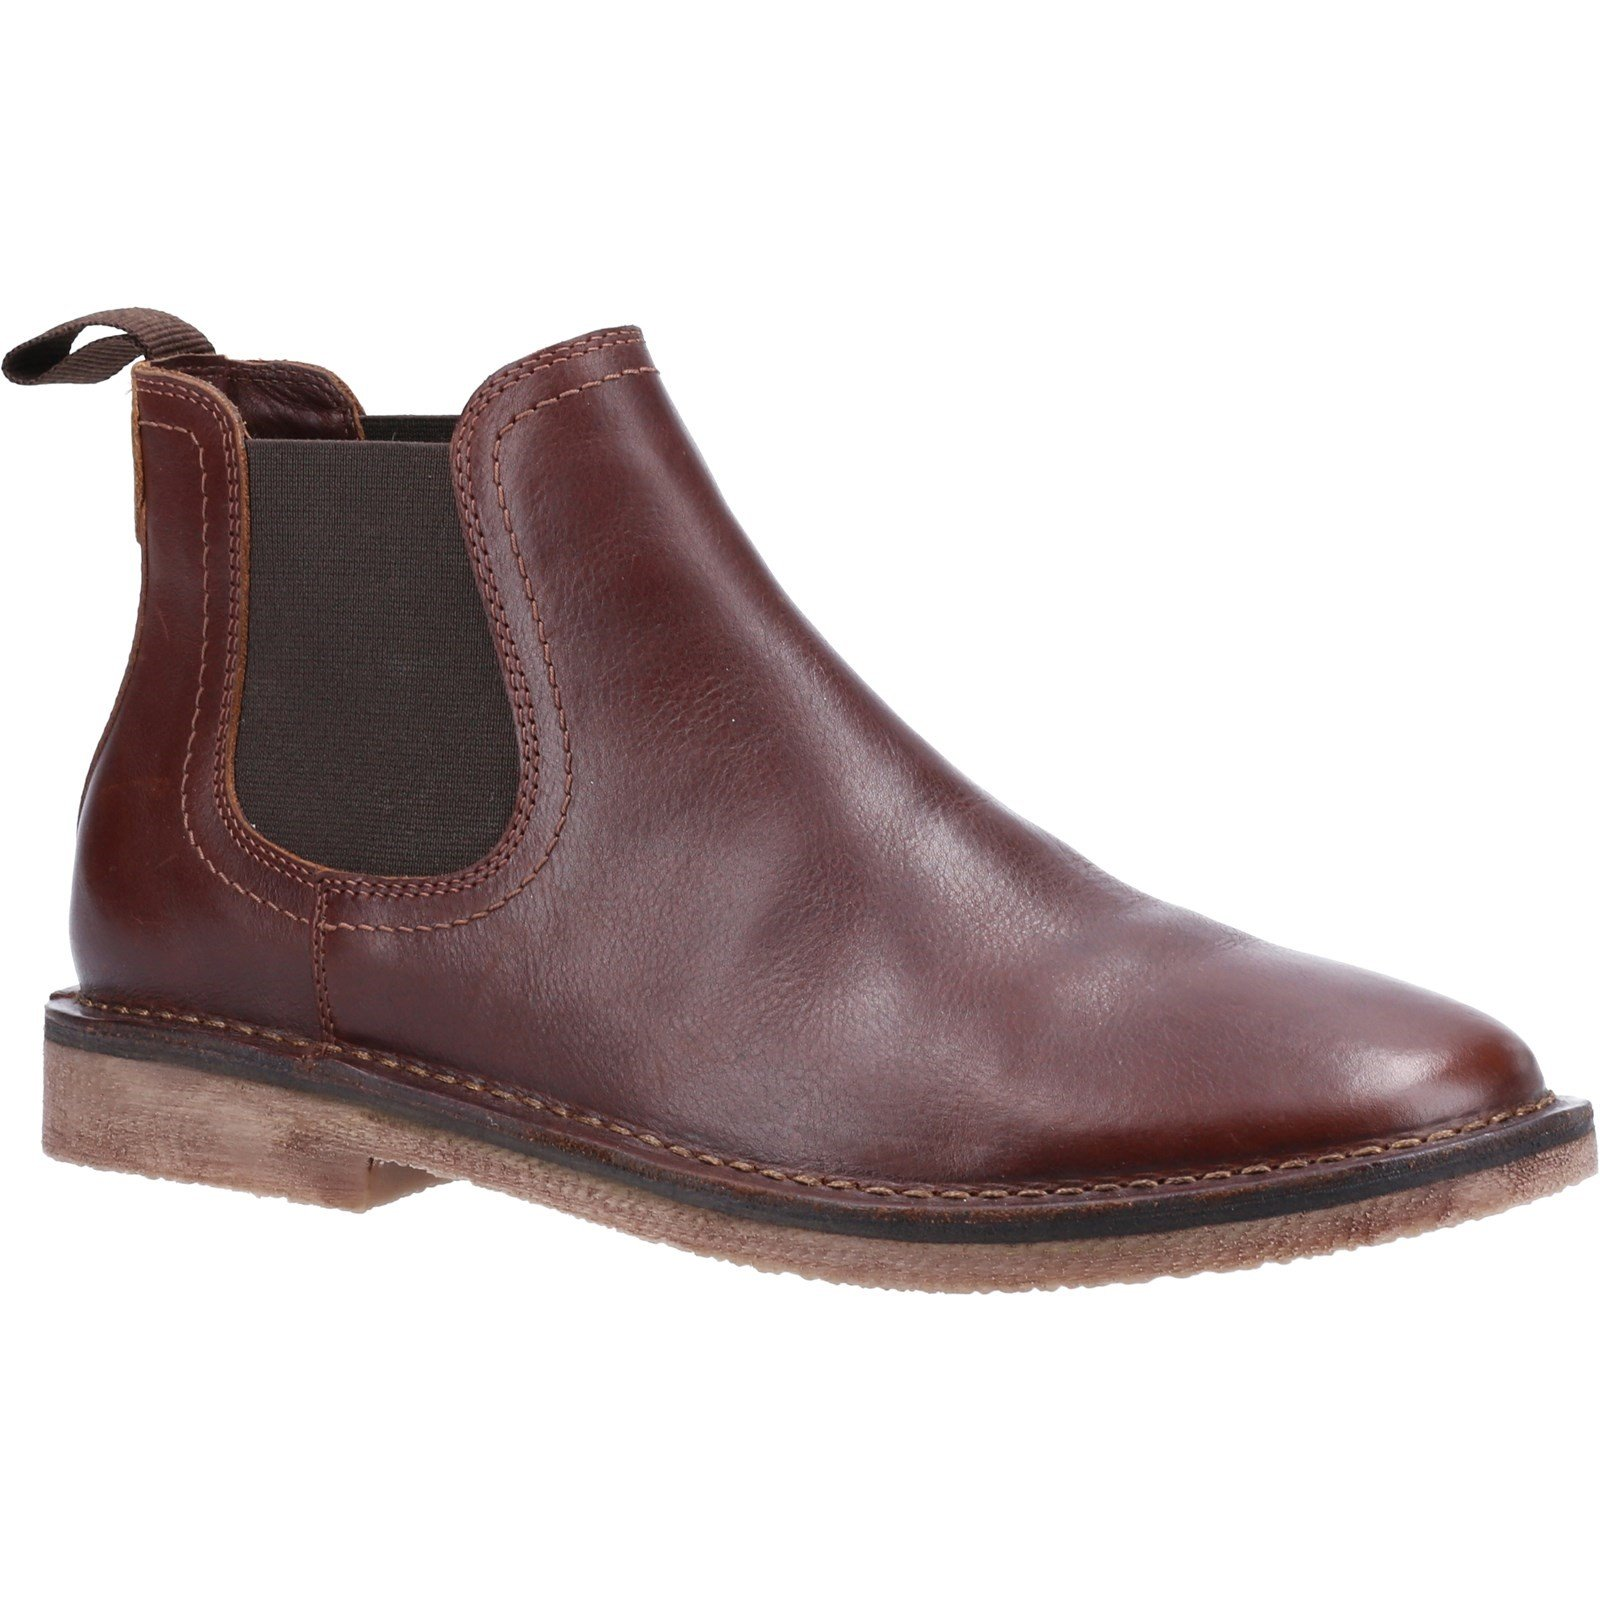 Hush Puppies Men's Shaun Leather Chelsea Boot Various Colours 32897 - Brown 6